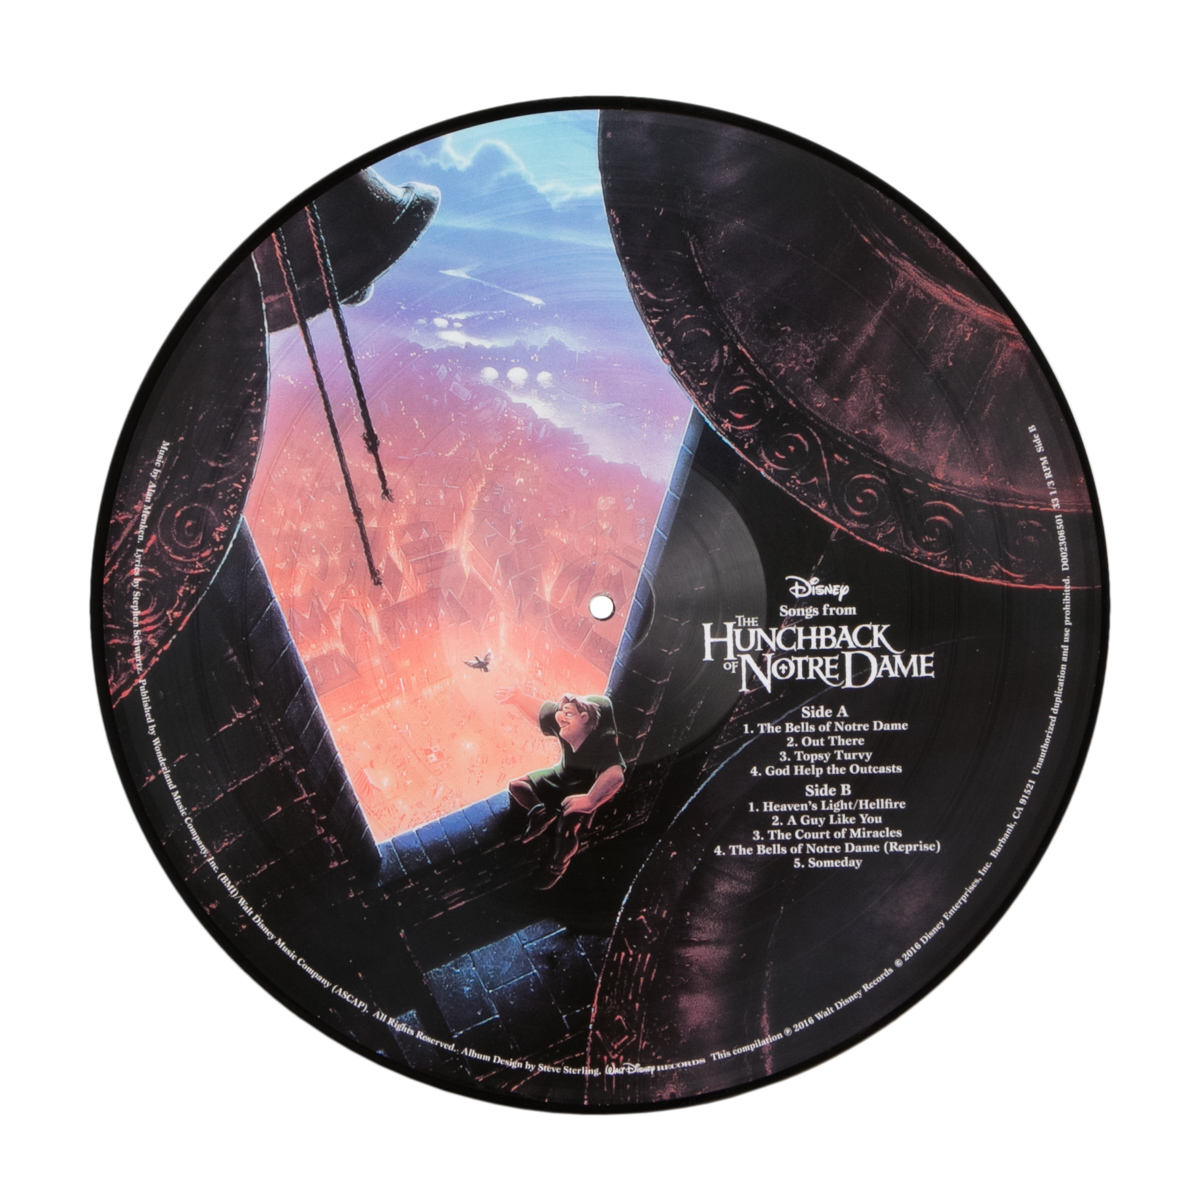 The Hunchback of Notre Dame Picture Vinyl